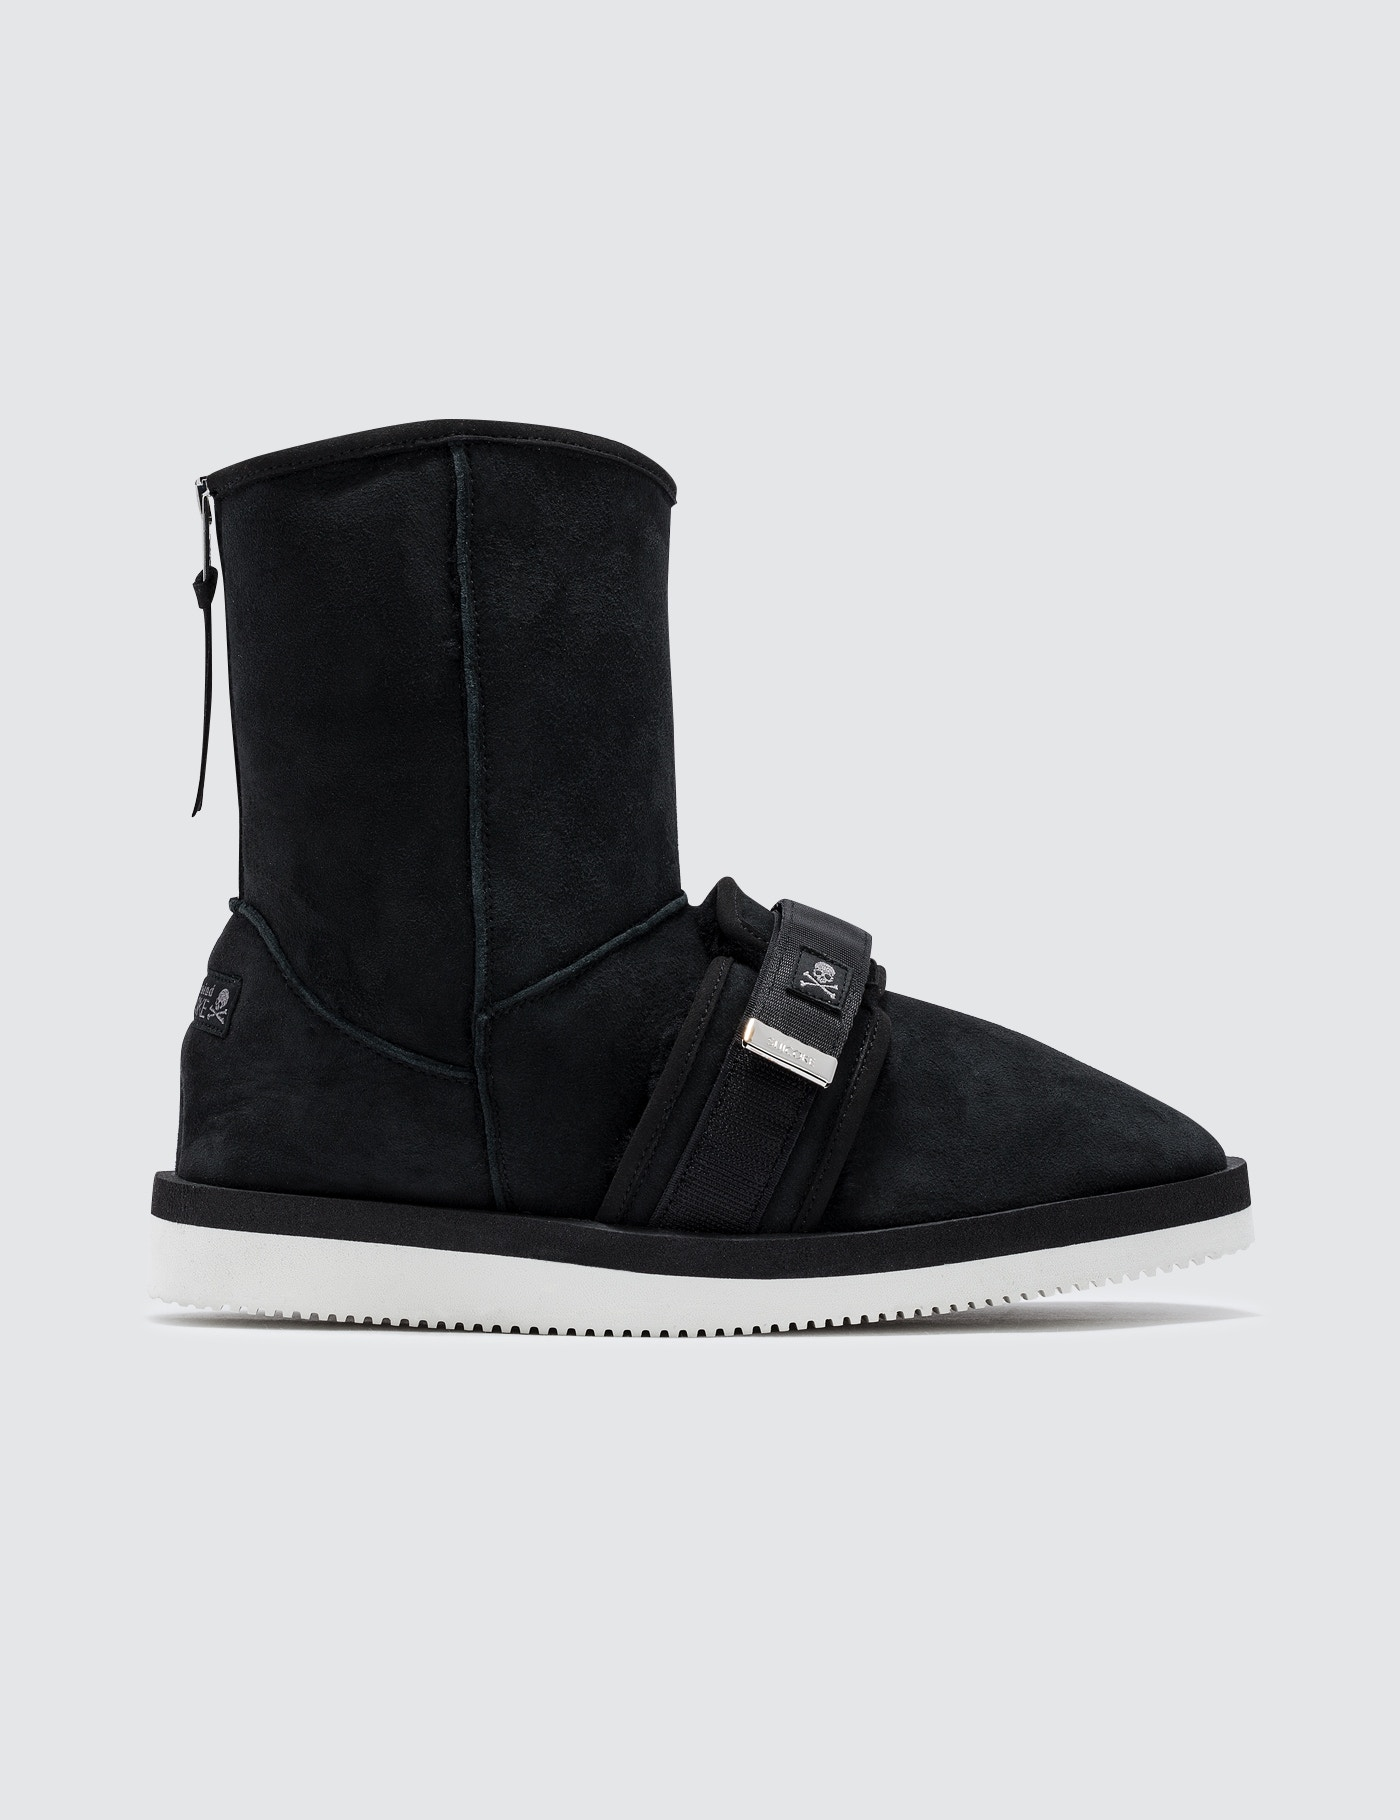 b0c25bbeef83 Buy Original Mastermind World x Suicoke ELS-VM2 Boots at Indonesia ...